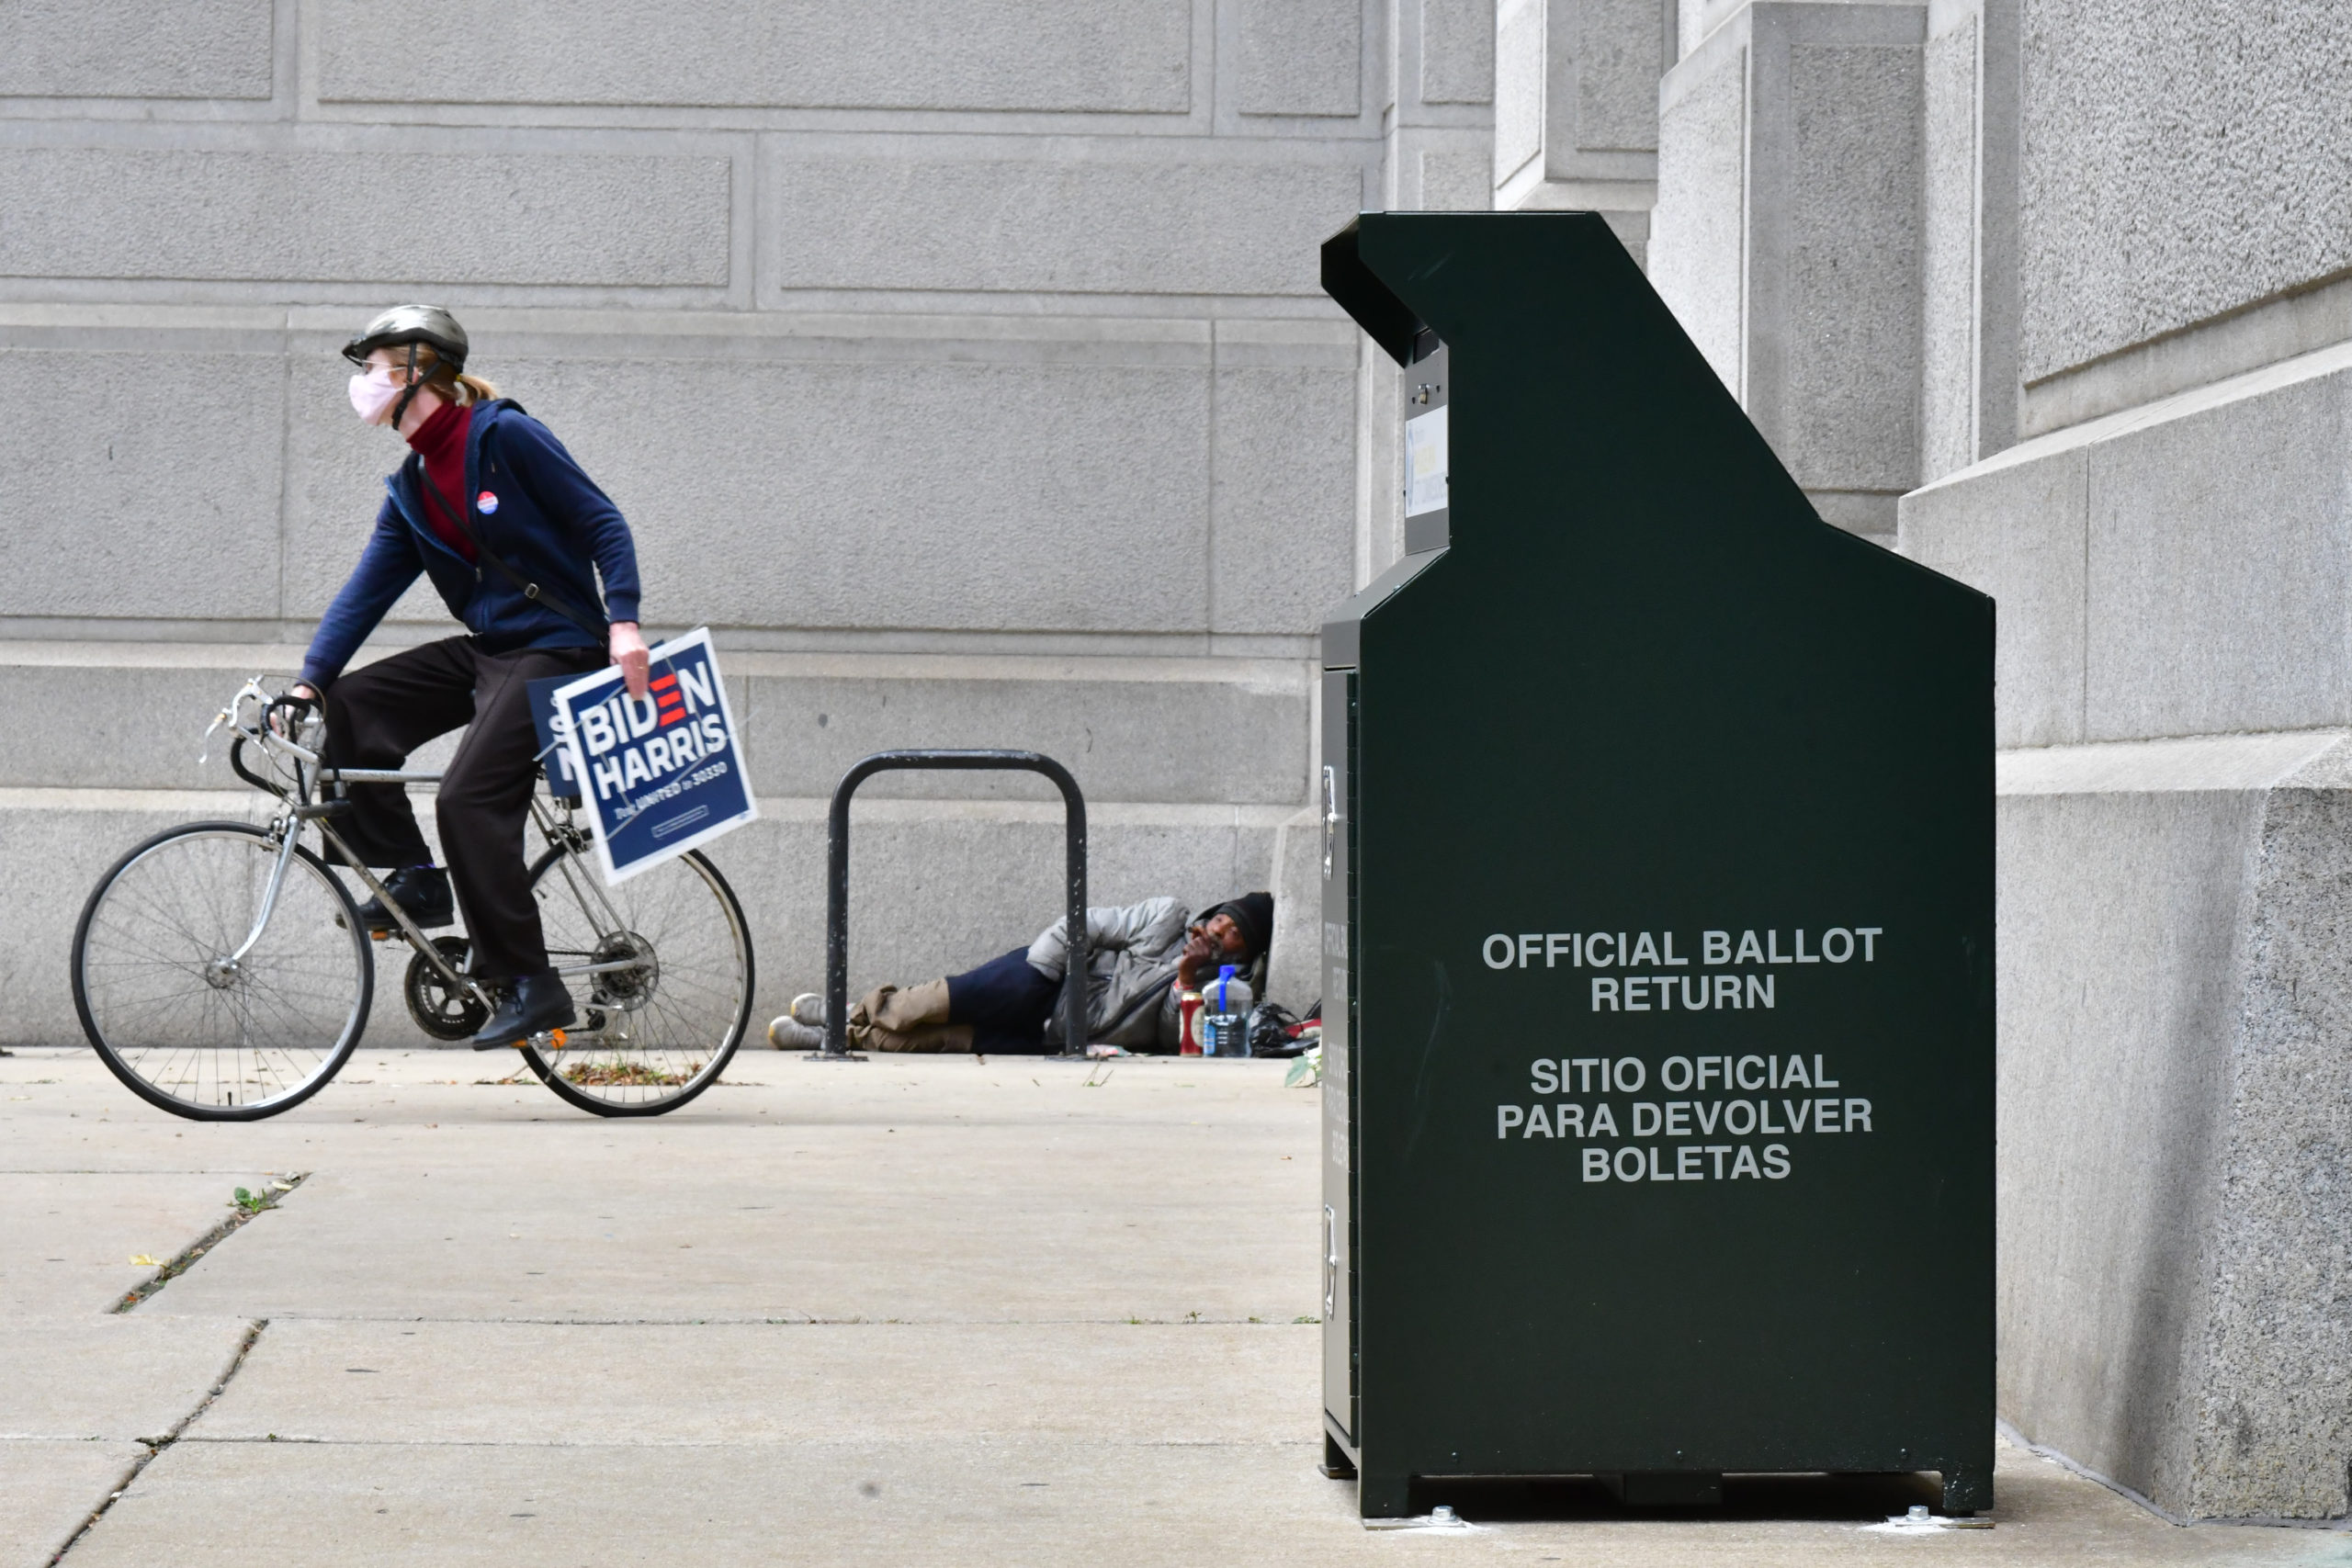 A woman holding a Biden-Harris campaign placard cycles away after casting her ballot at the Philadelphia City Hall satellite polling station on Oct. 27. (Mark Makela/Getty Images)